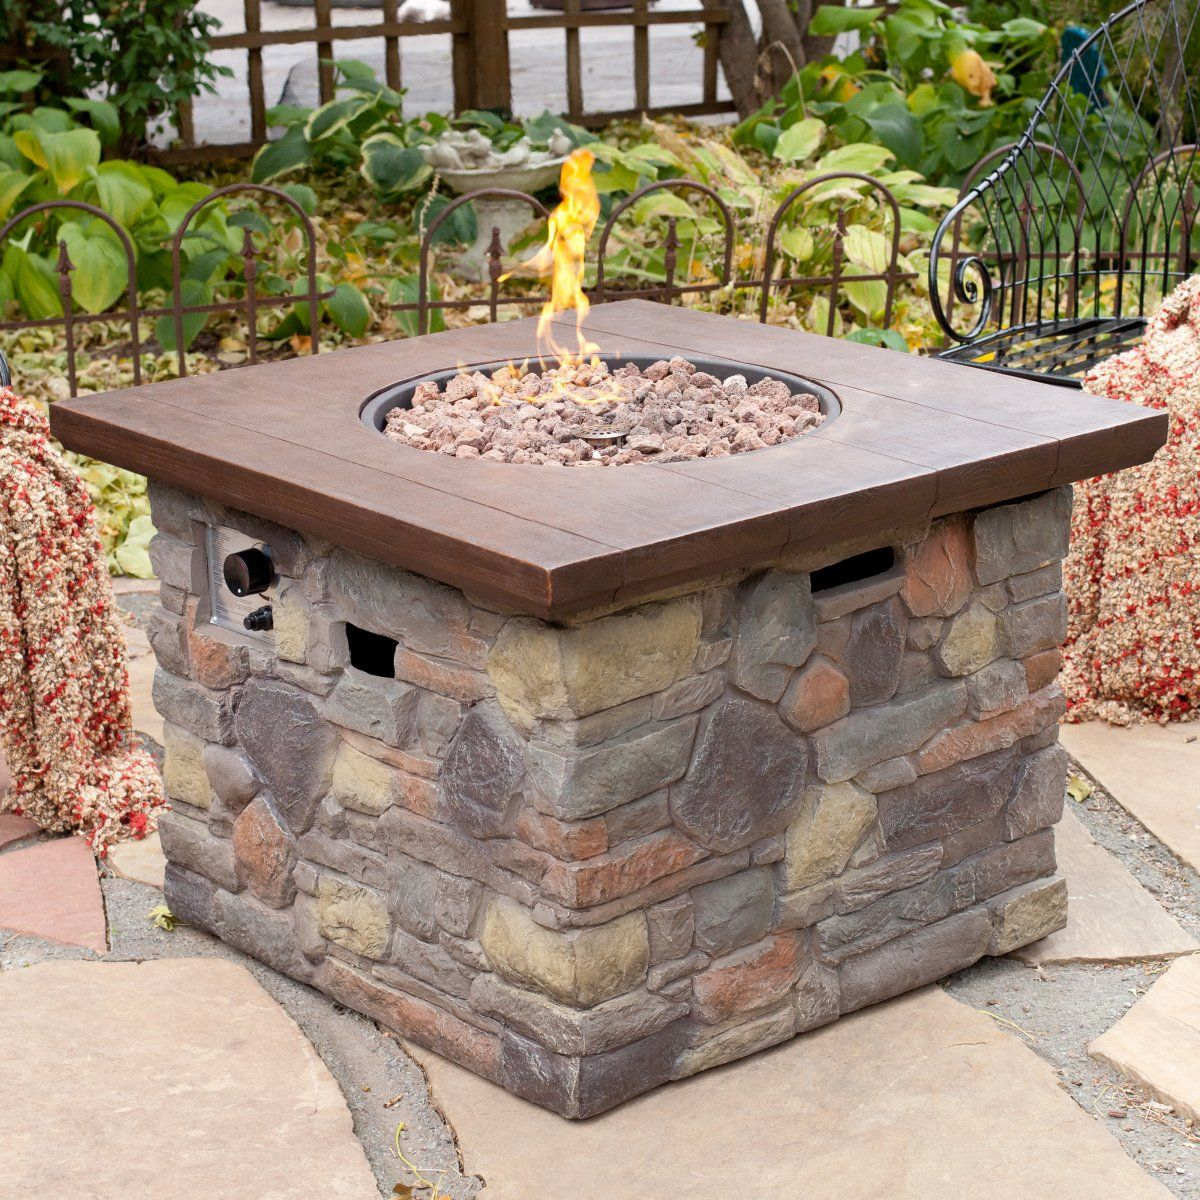 Bond Galiano Propane Fire Pit Table Outdoor Decorating